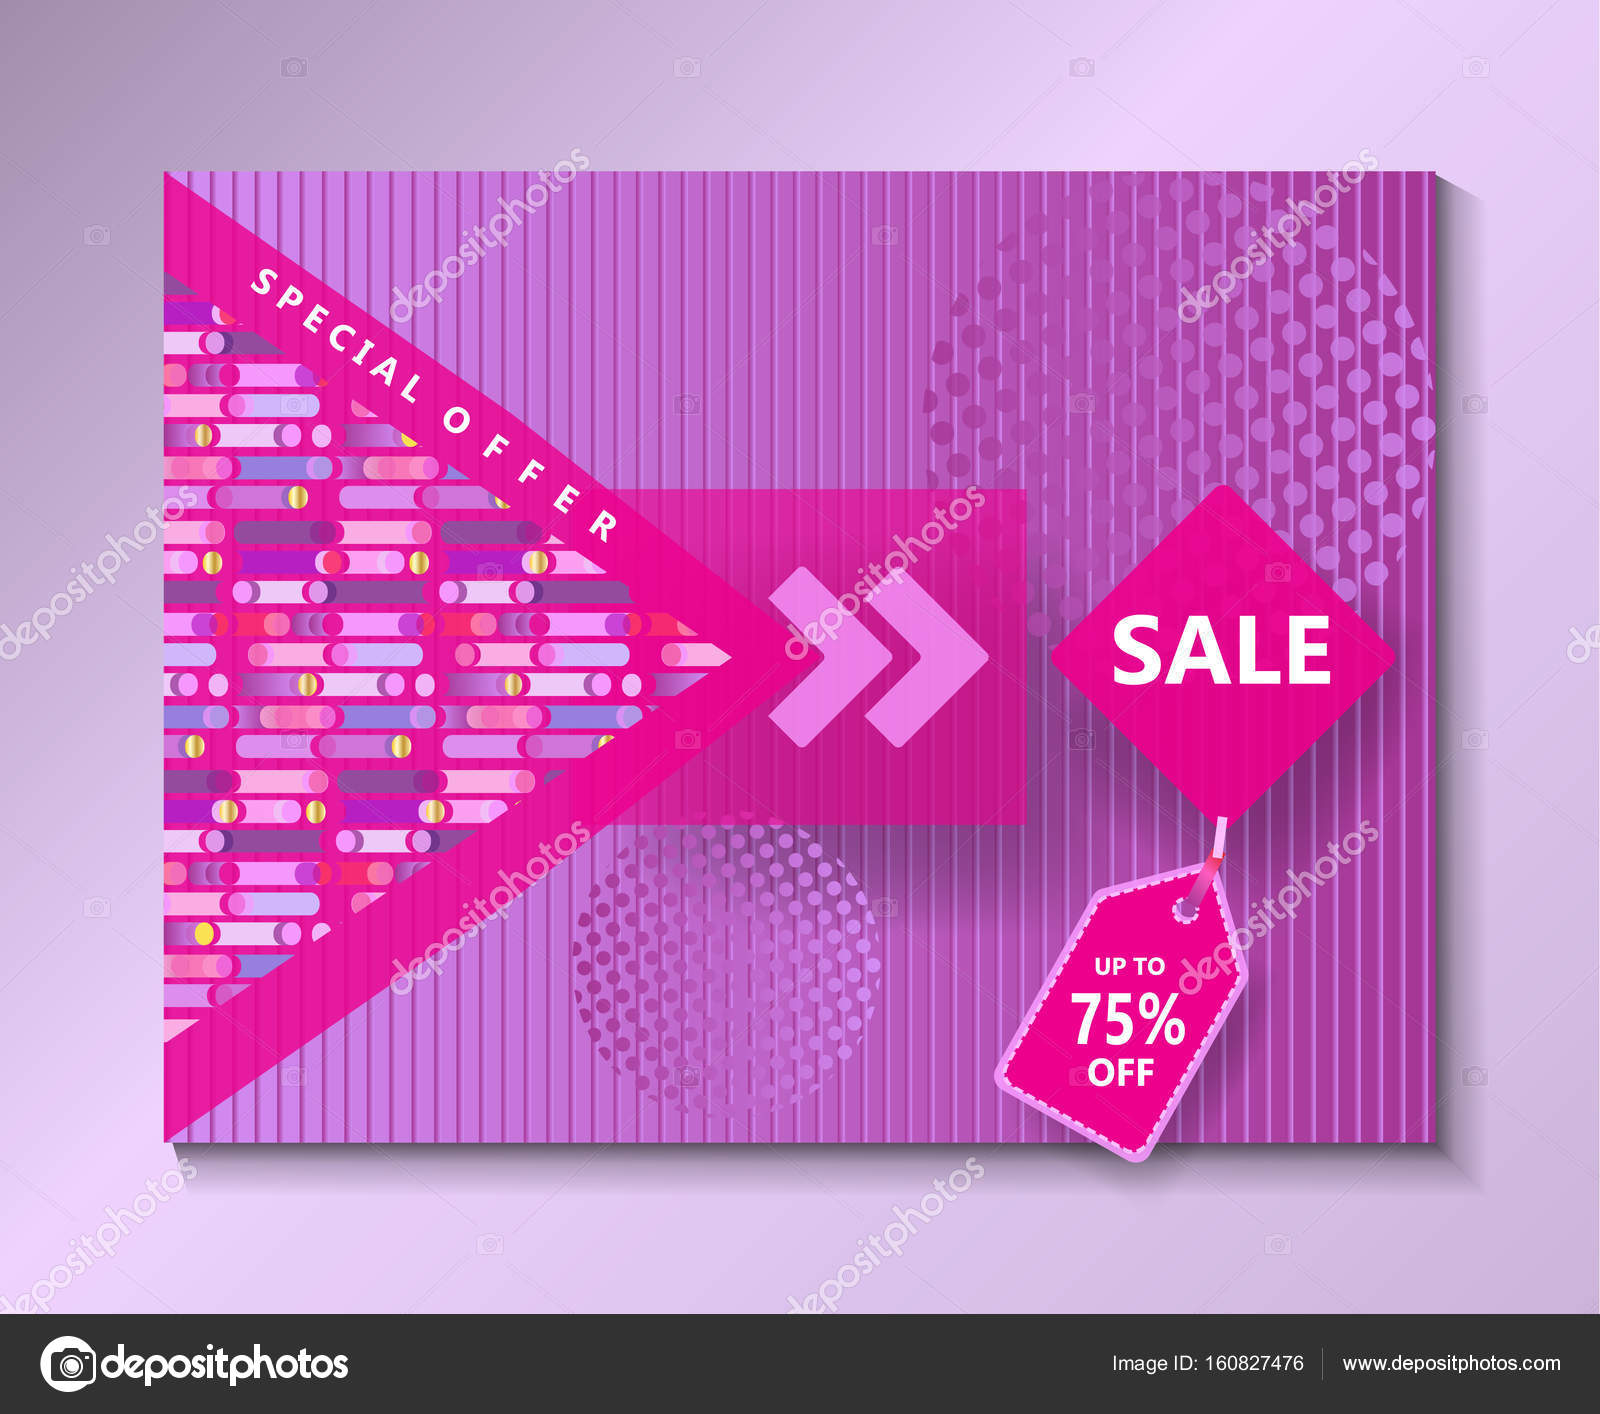 Modern Art Design For Gallery Exhibition Catalog Cover Business Brochure Poster Banner Card Envelope Template Vector Geometric Dynamic Shapes